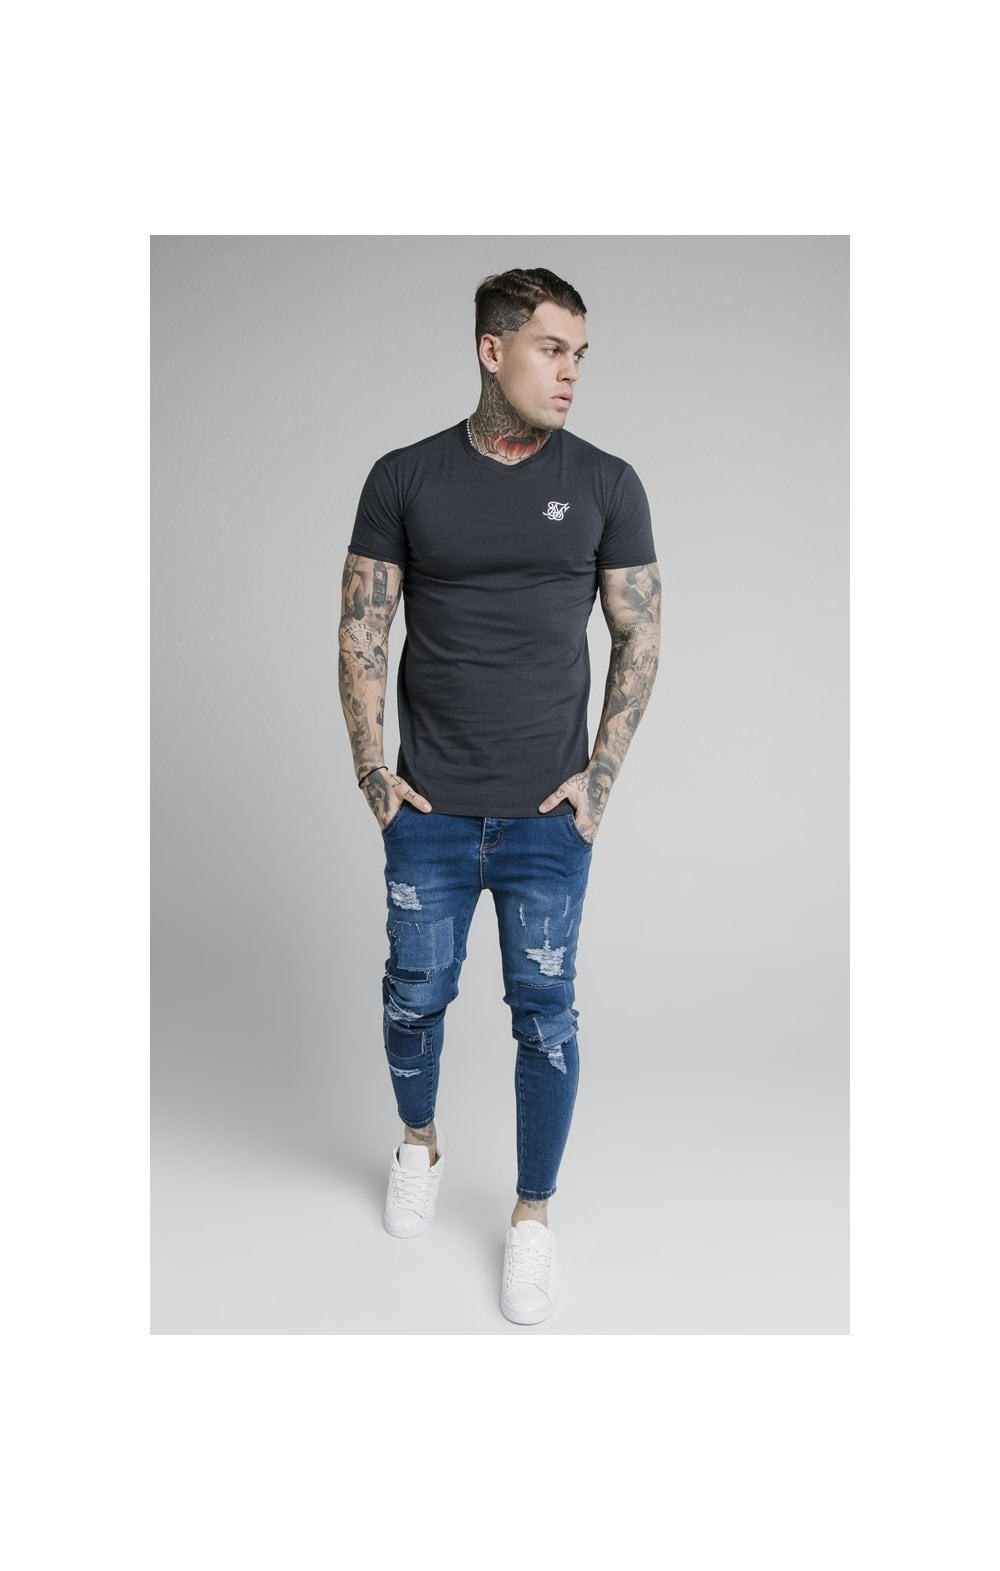 SikSilk Straight Hem Gym Tee - Navy (4)